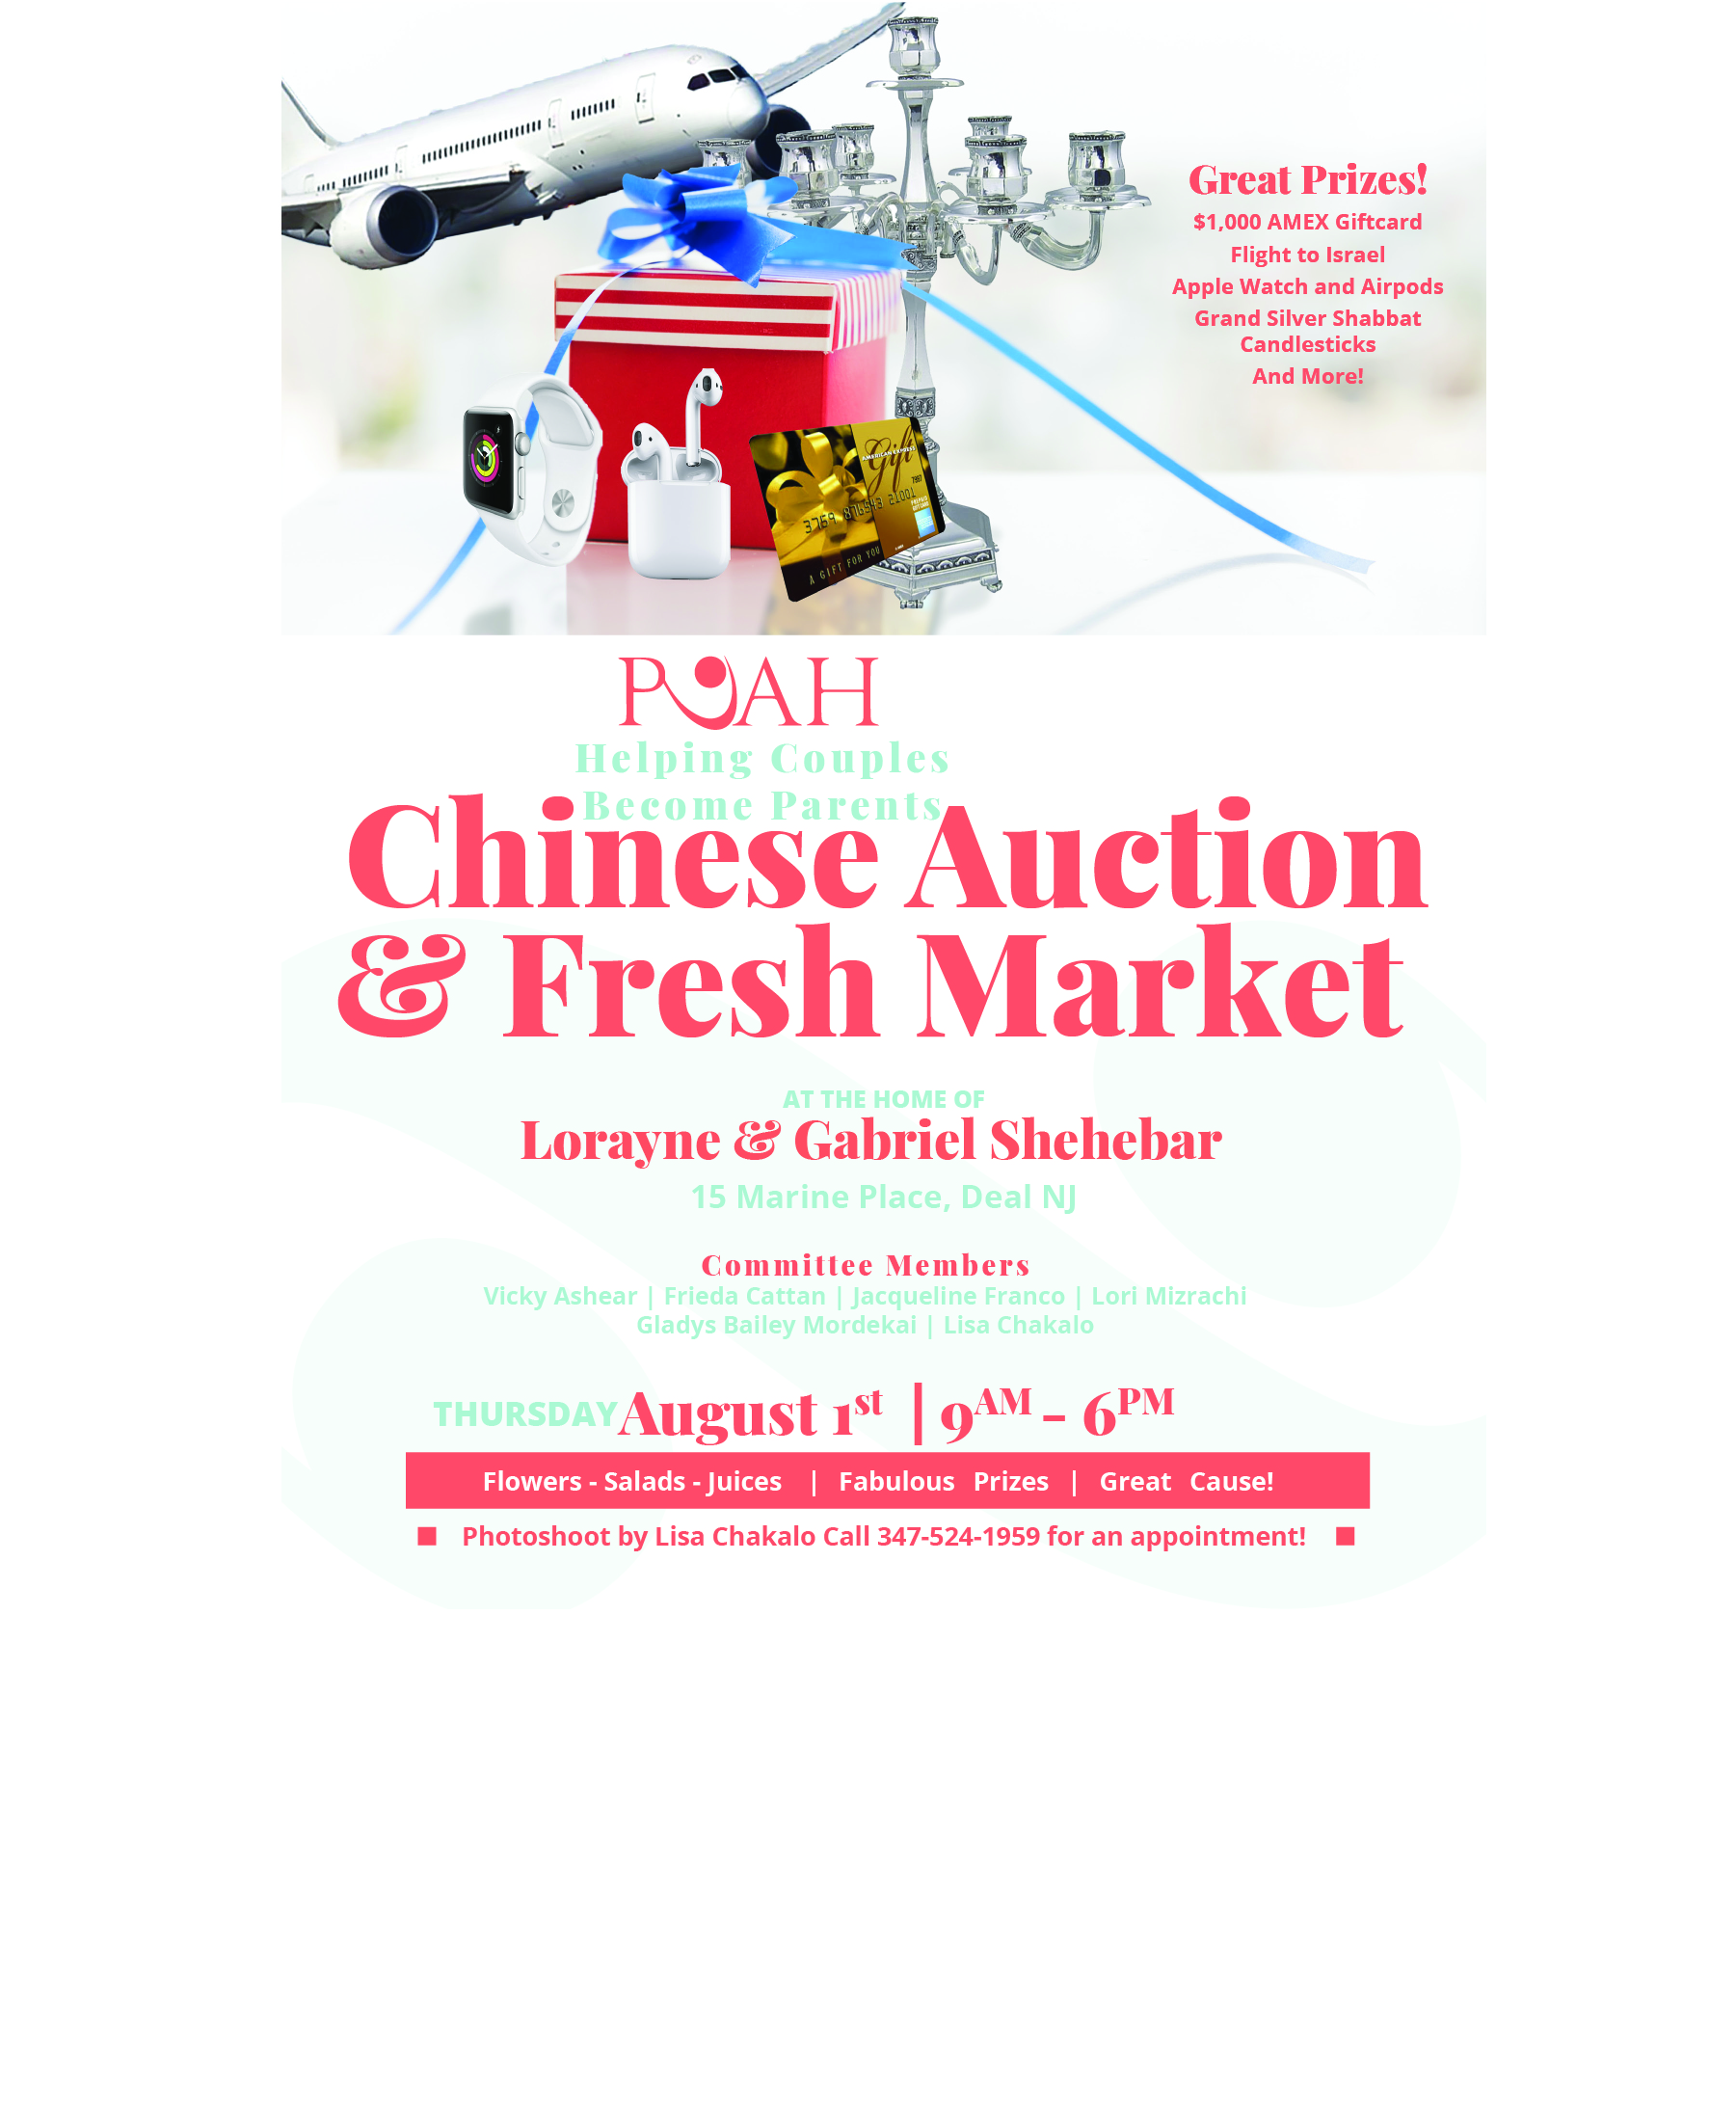 Chinese Auction and Fresh Market